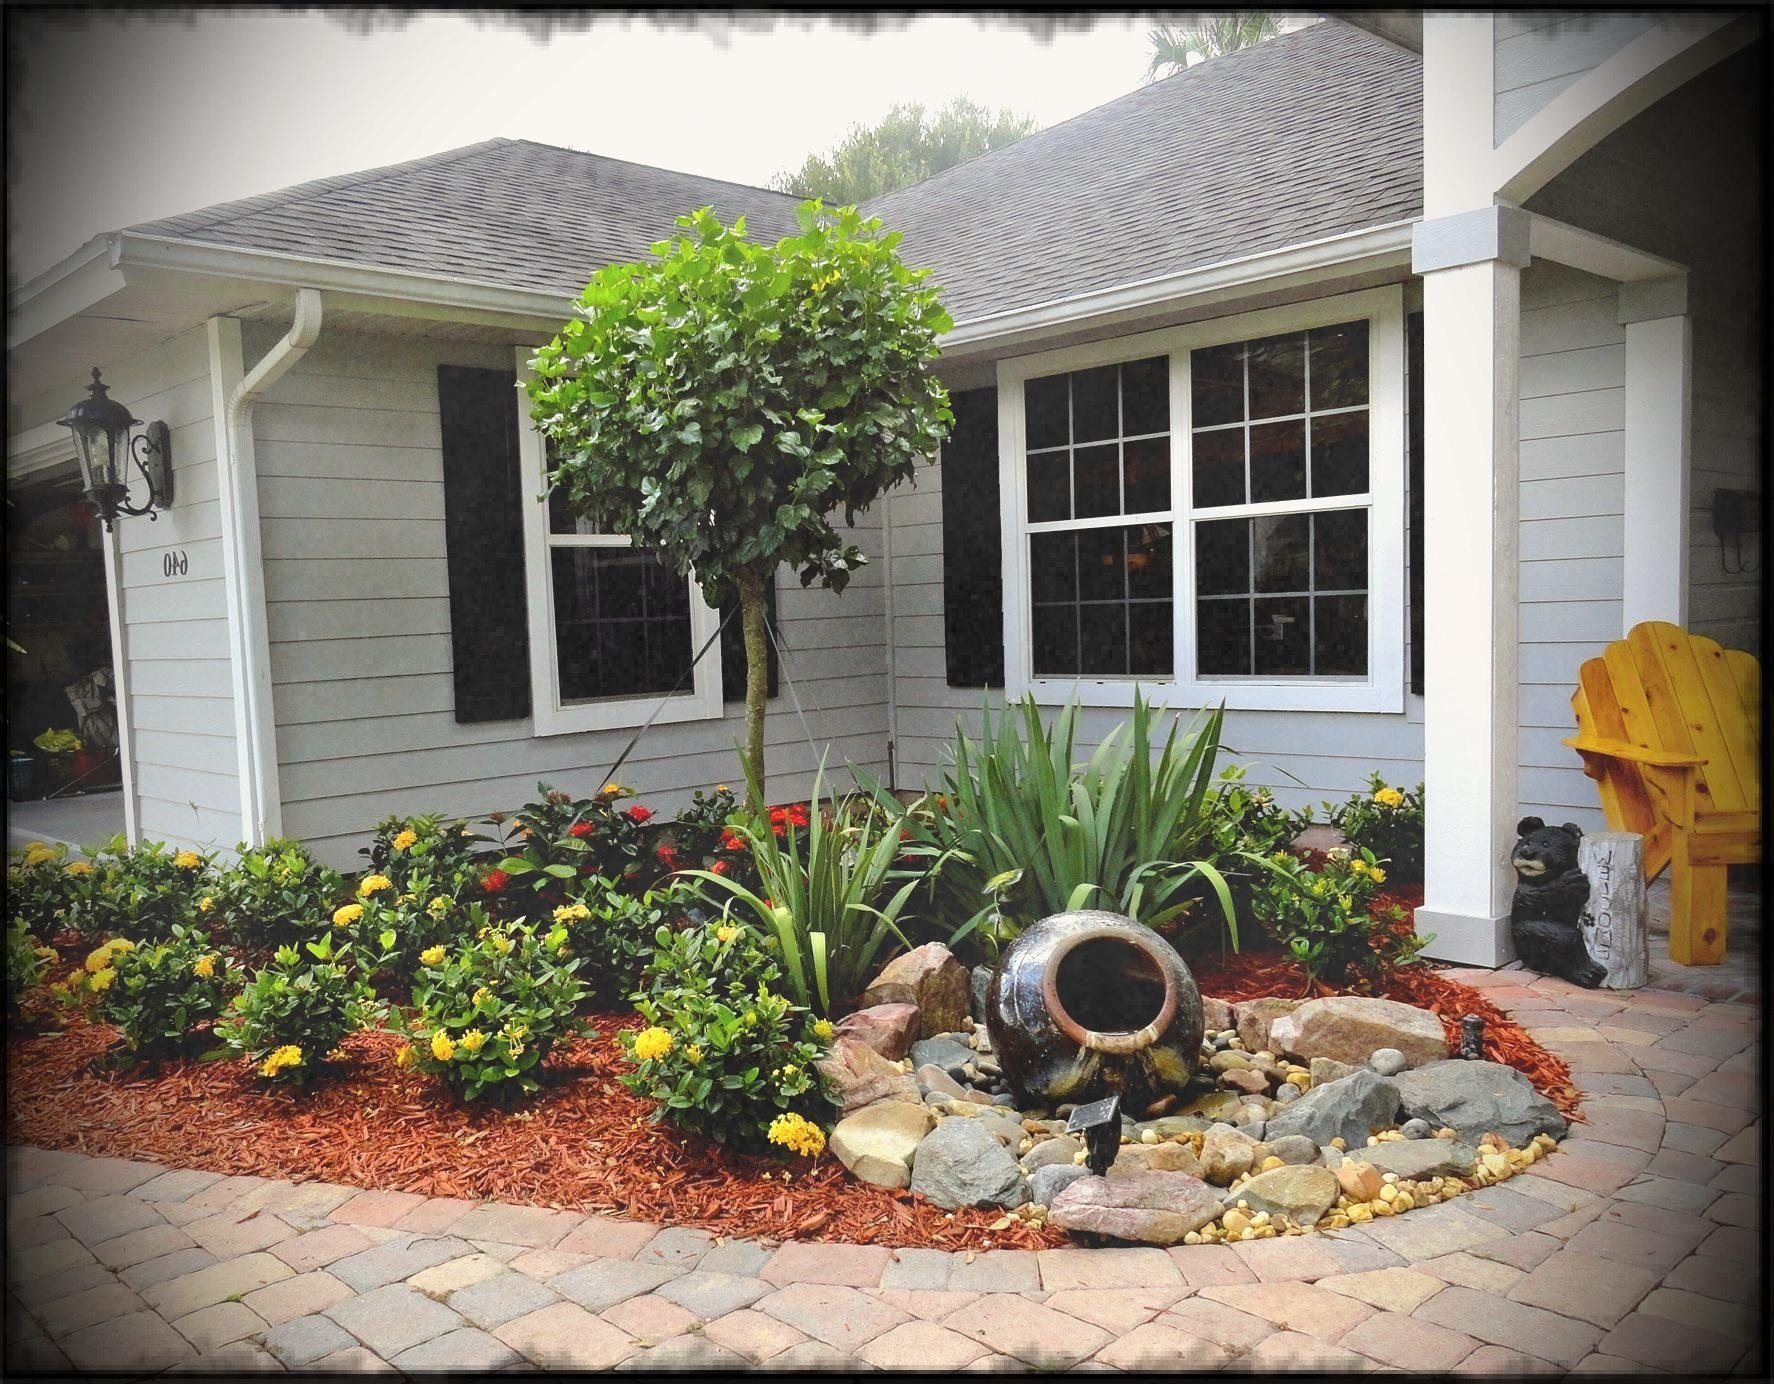 10 Most Recommended Landscaping Ideas For Mobile Homes no grass landscape ideas for front yard landscaping with water 2020